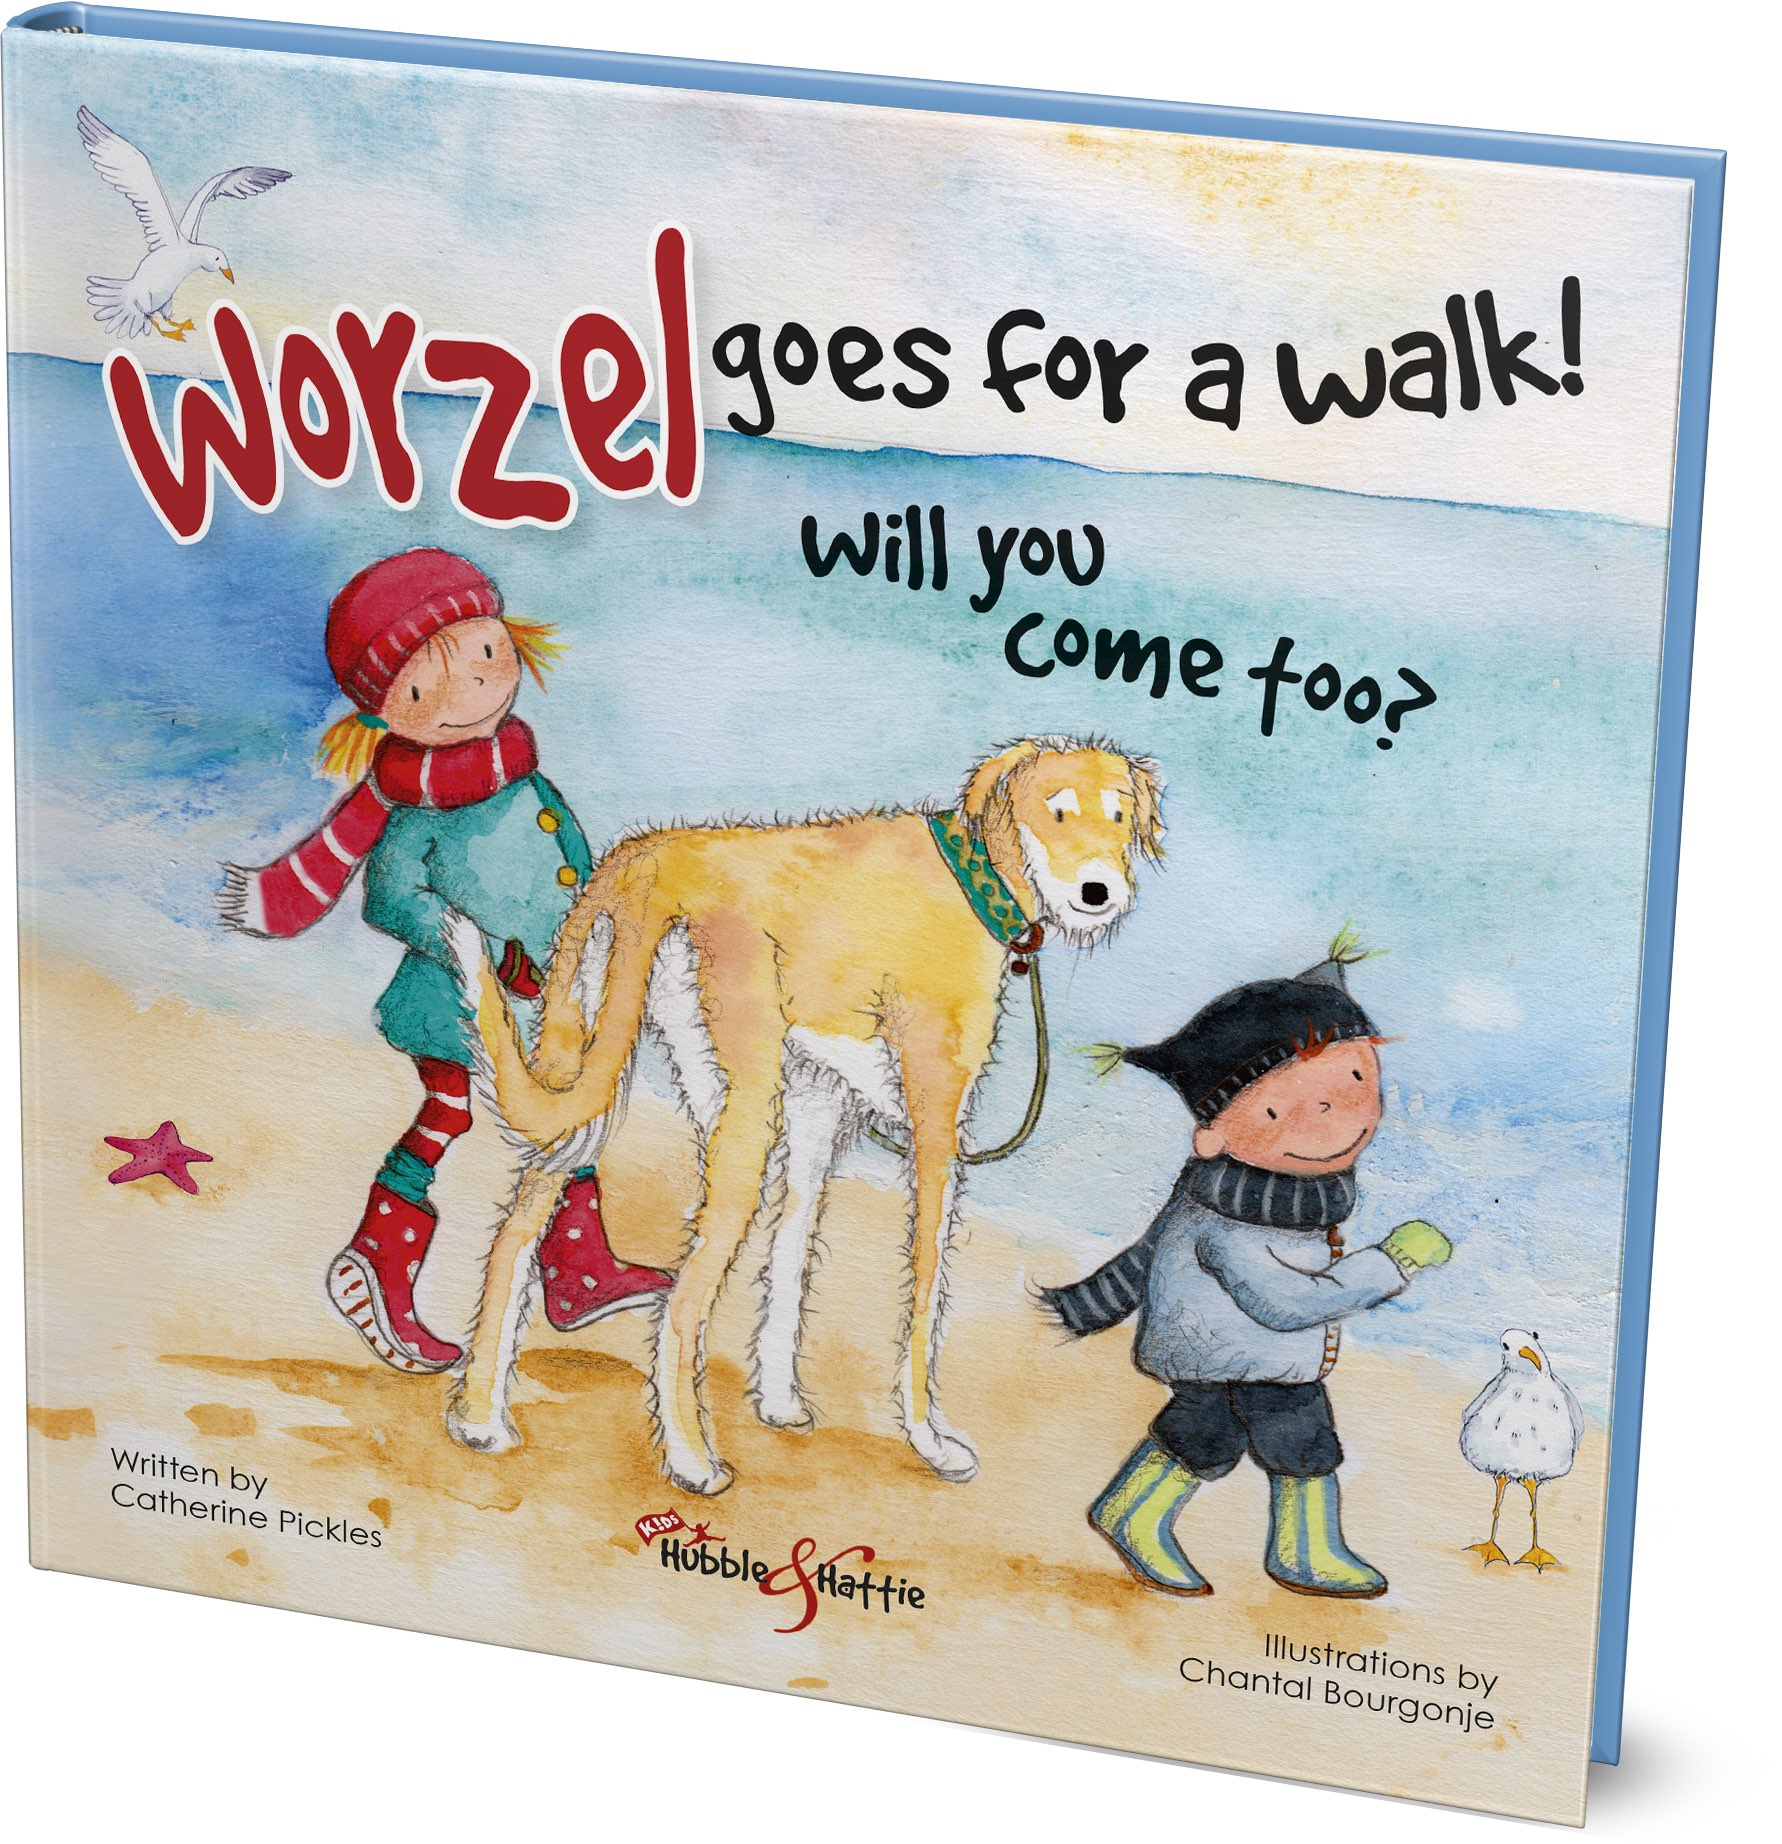 Have lovely walks with your dog! In Worzel Goes For a Walk, children learn there are important rules that need to be followed to ensure that walking the dog is a positive experience for everyone.